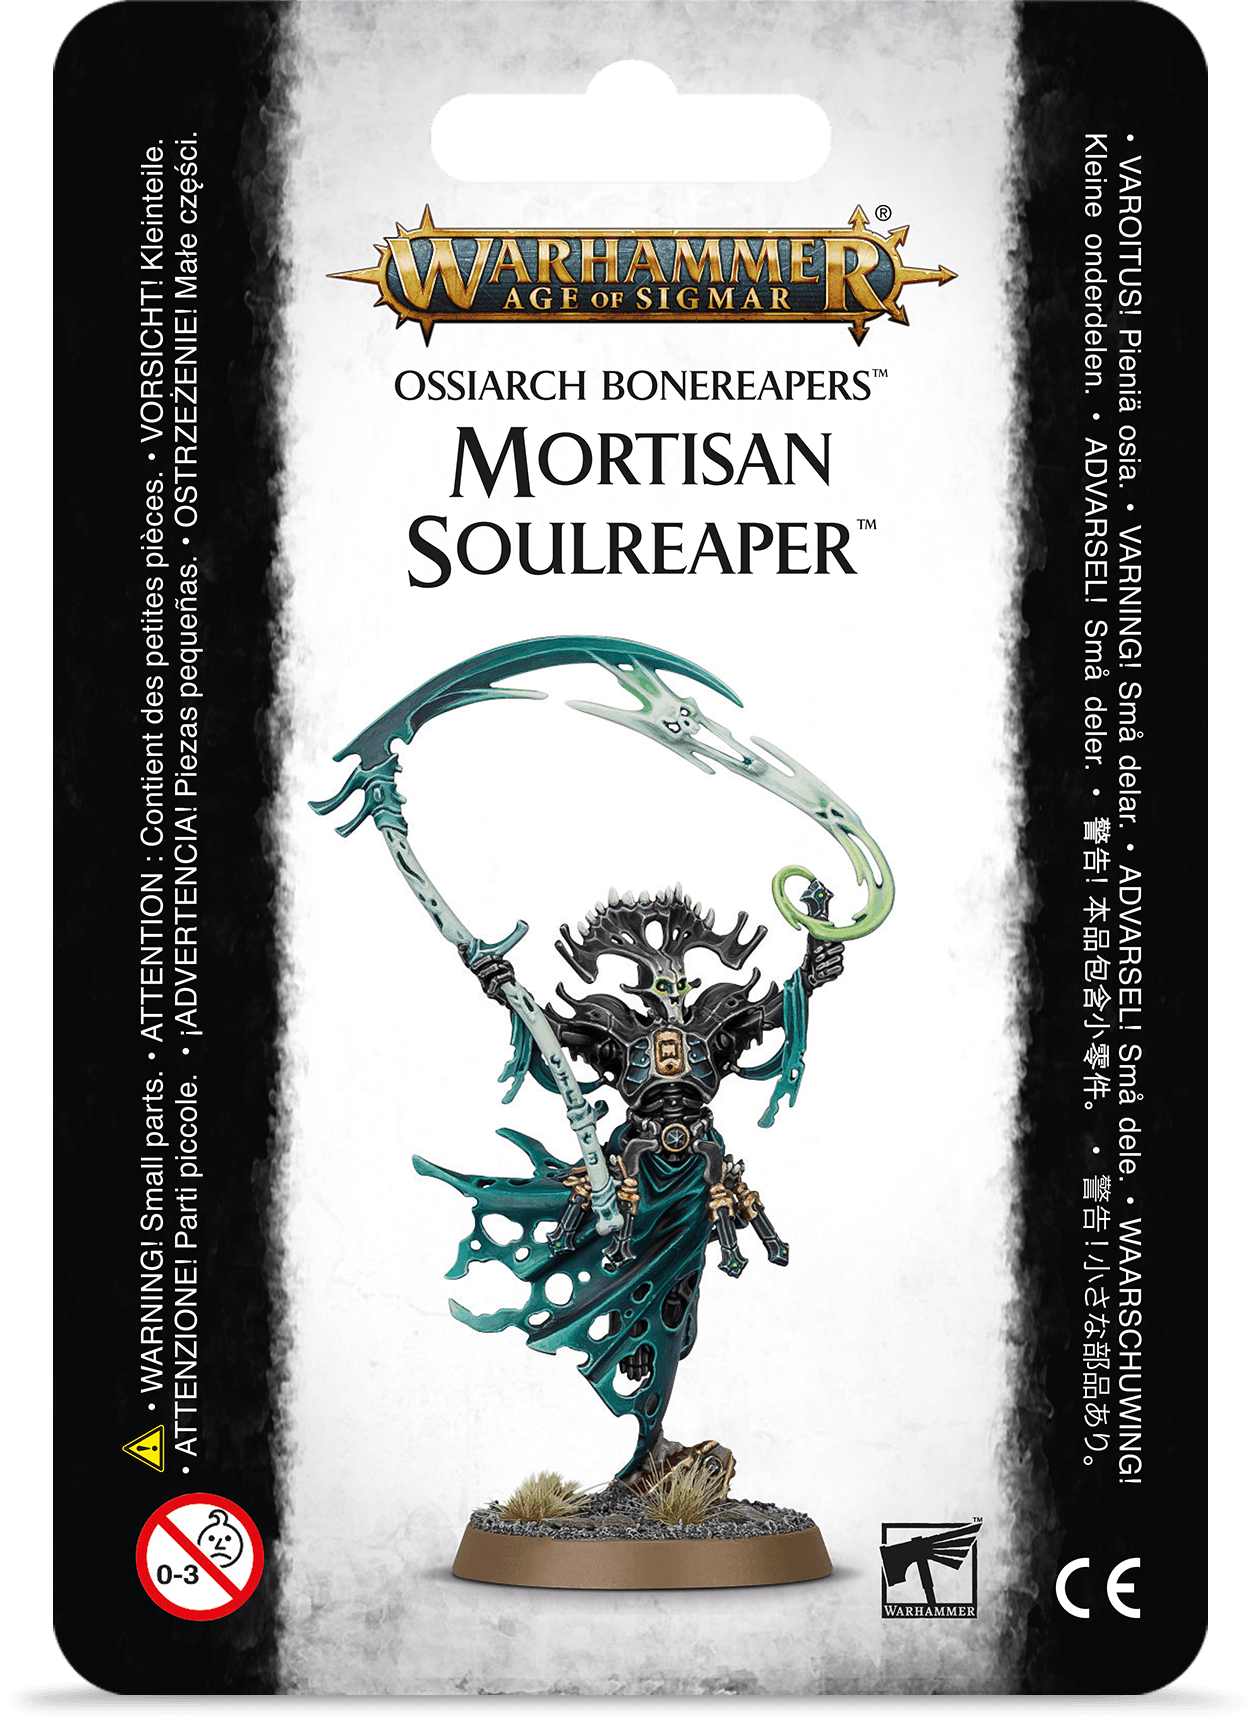 Warhammer Age Of Sigmar: Ossiarch Bonereapers: MORTISAN SOULREAPER